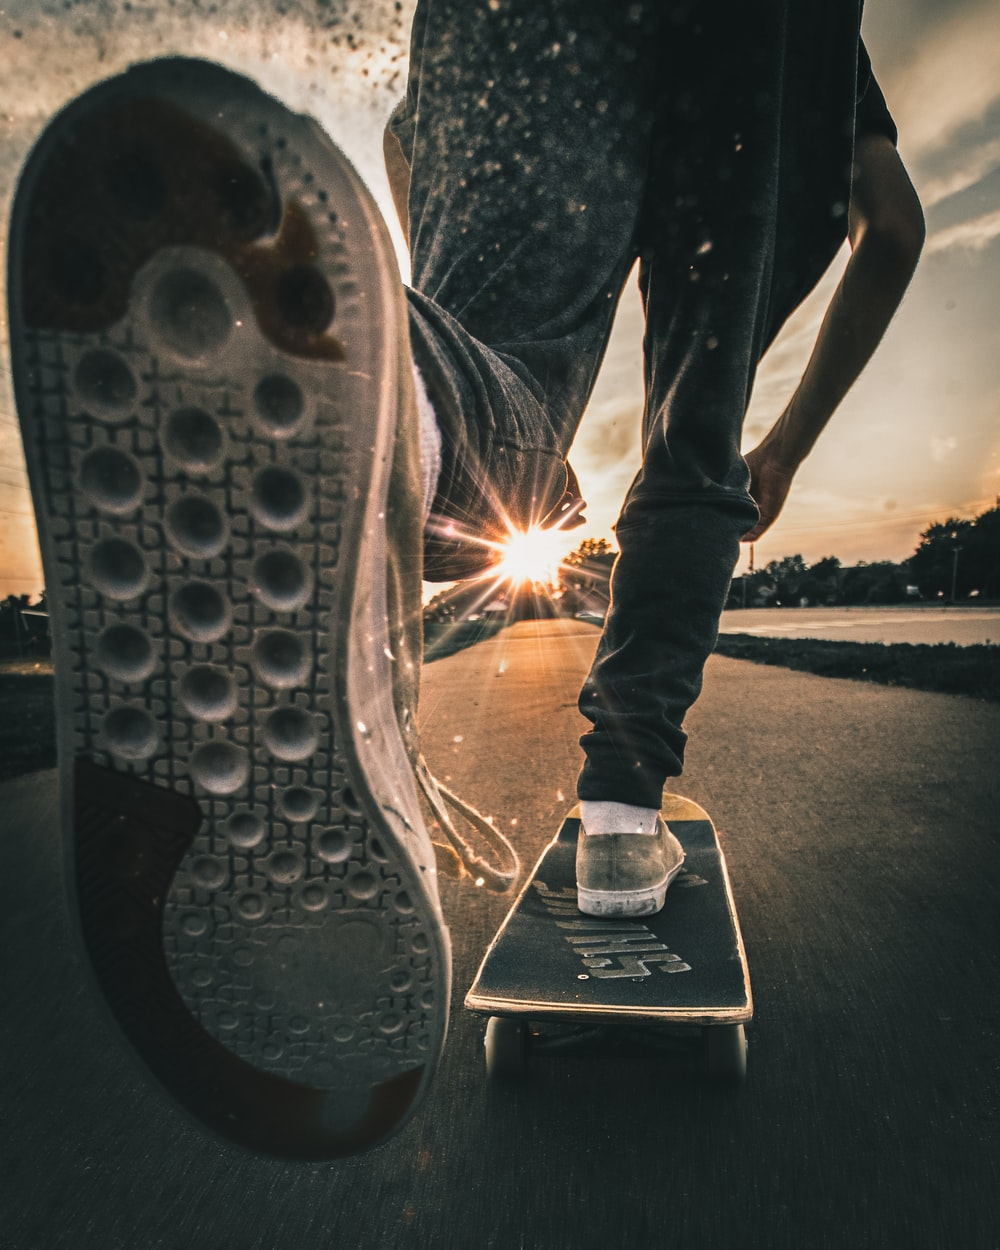 person on skateboard